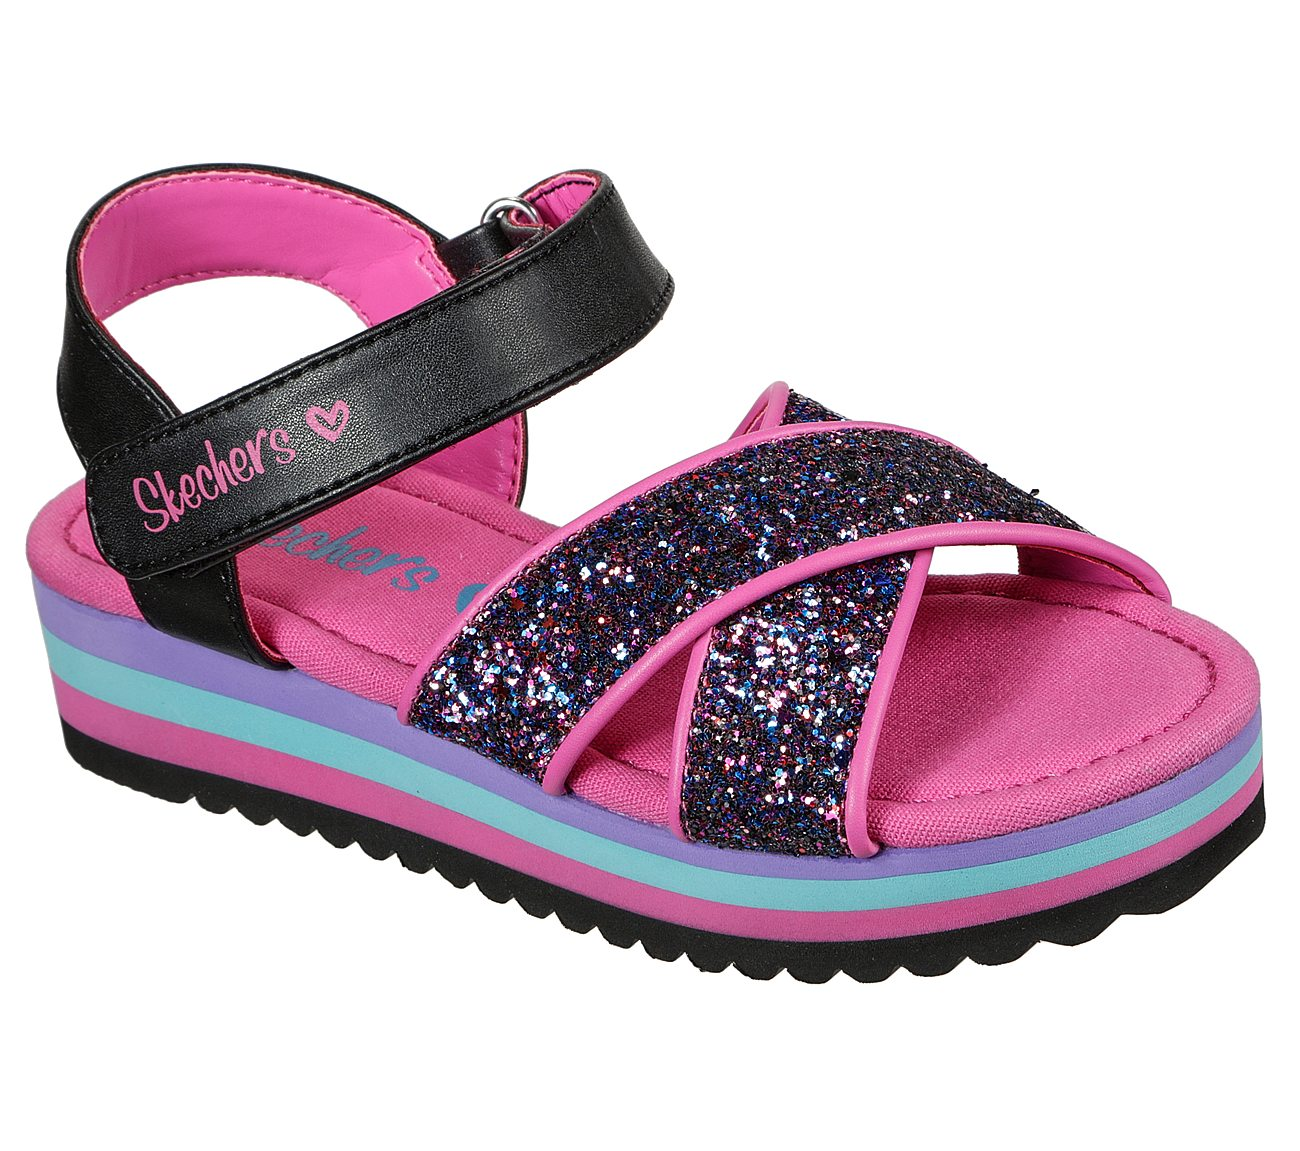 Buy SKECHERS S Lights: Heart Lights Sandal Color Groove S